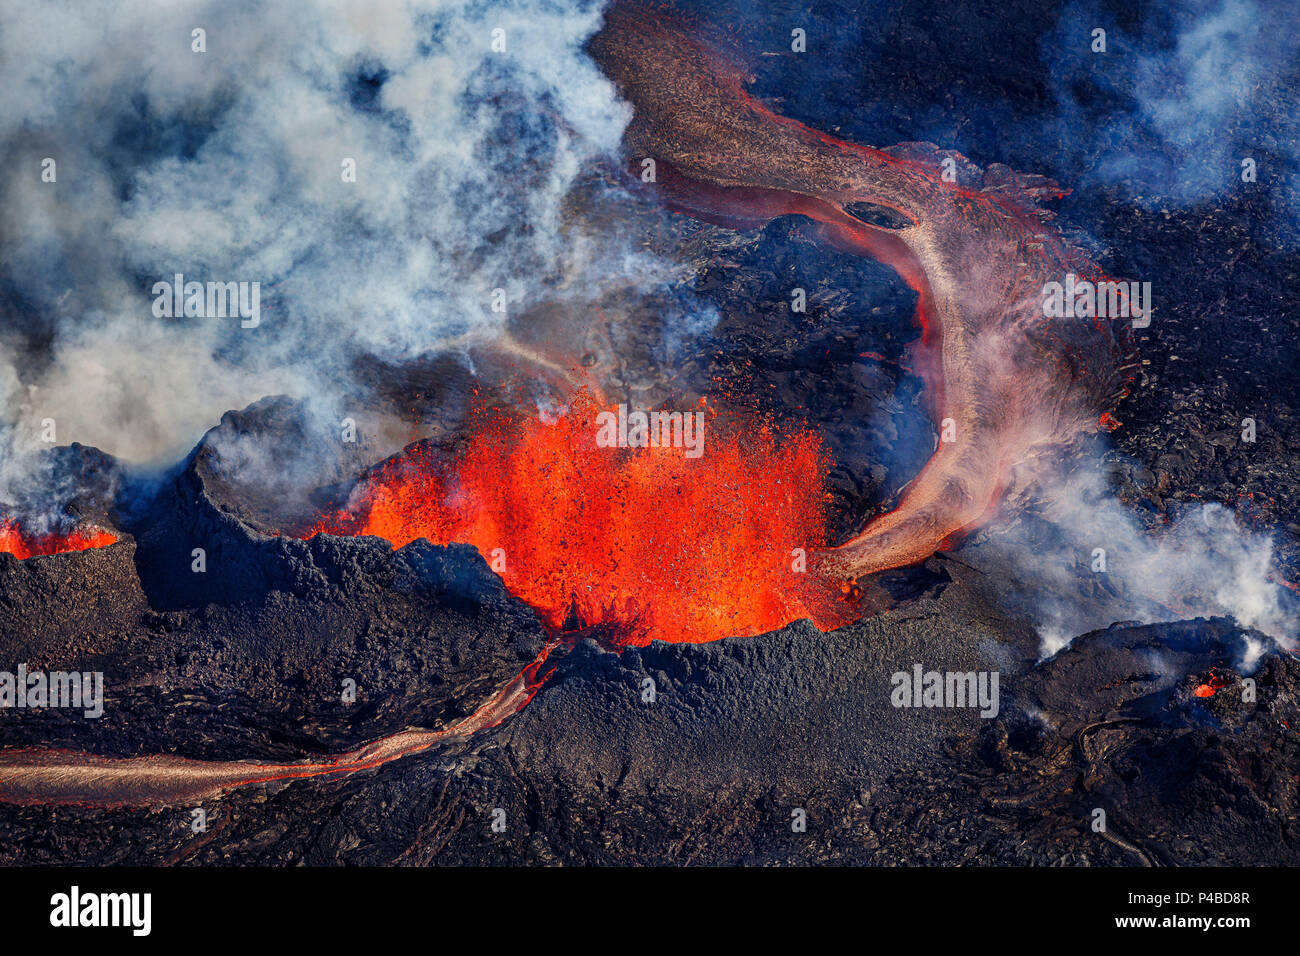 Volcano eruption at the Holuhraun Fissure near Bardarbunga Volcano, Iceland Aerial view of the lava fountains and massive plumes, Holuhraun Fissure, near the Bardarbunga Volcano, Iceland. August 29, 2014, a fissure eruption started in Holuhraun at the northern end of a magma intrusion that had moved progressively north, from the Bardarbunga volcano. Picture date Sept 1, 2014. Bardarbunga is a subglacial stratovolcano located under the Vatnajokull. - Stock Image